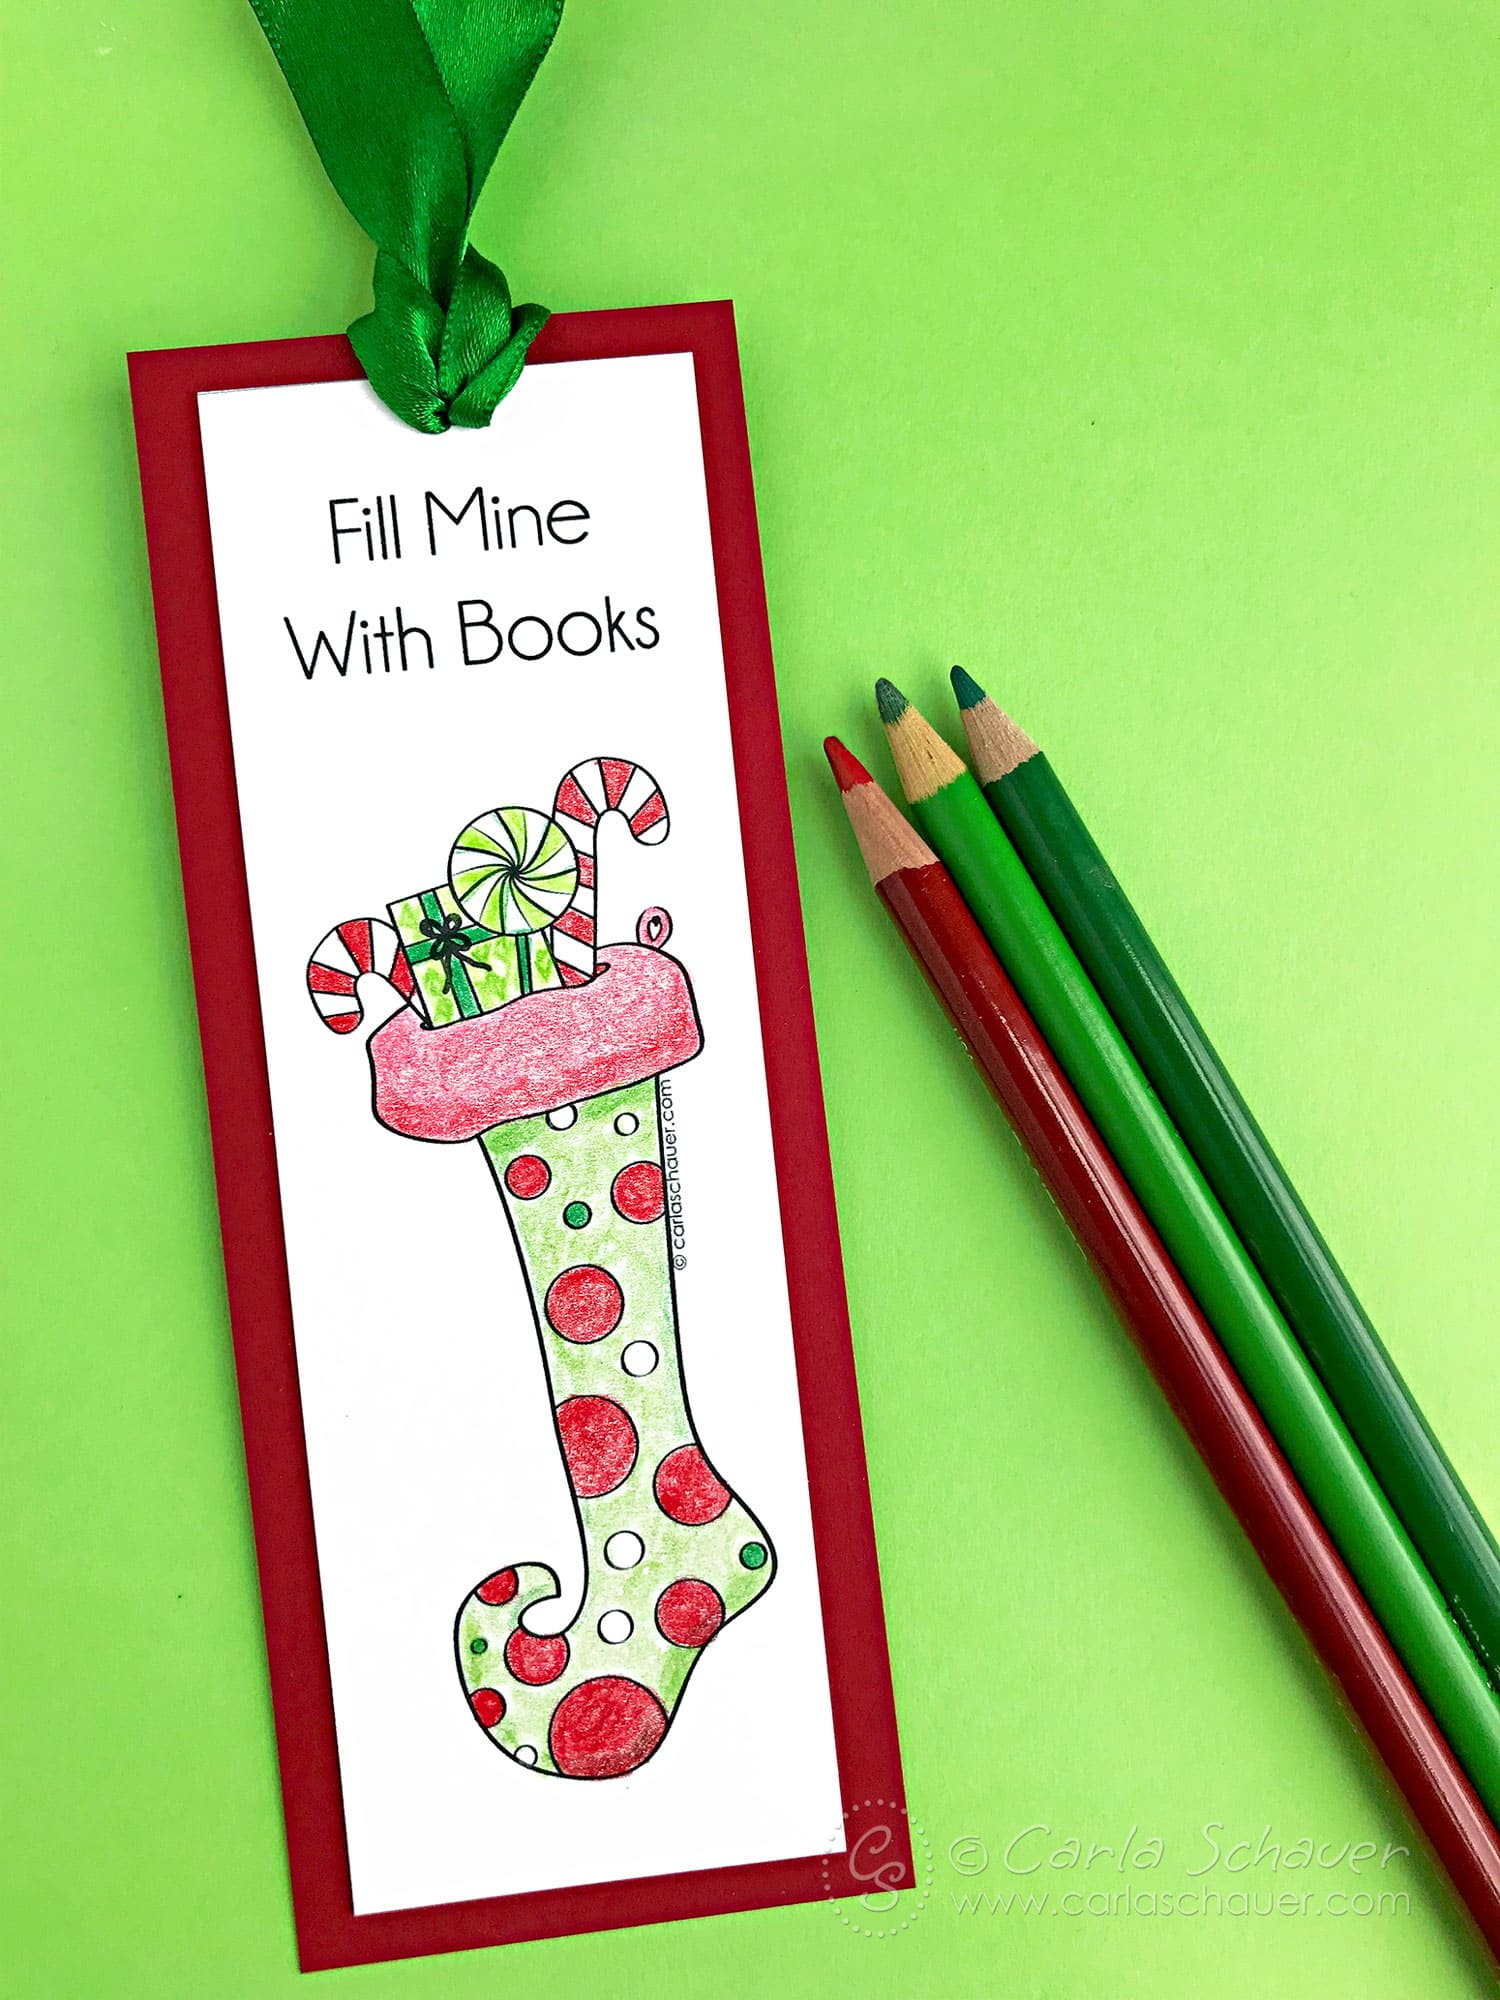 Colored stocking holiday printable bookmark with colored pencils on green background.